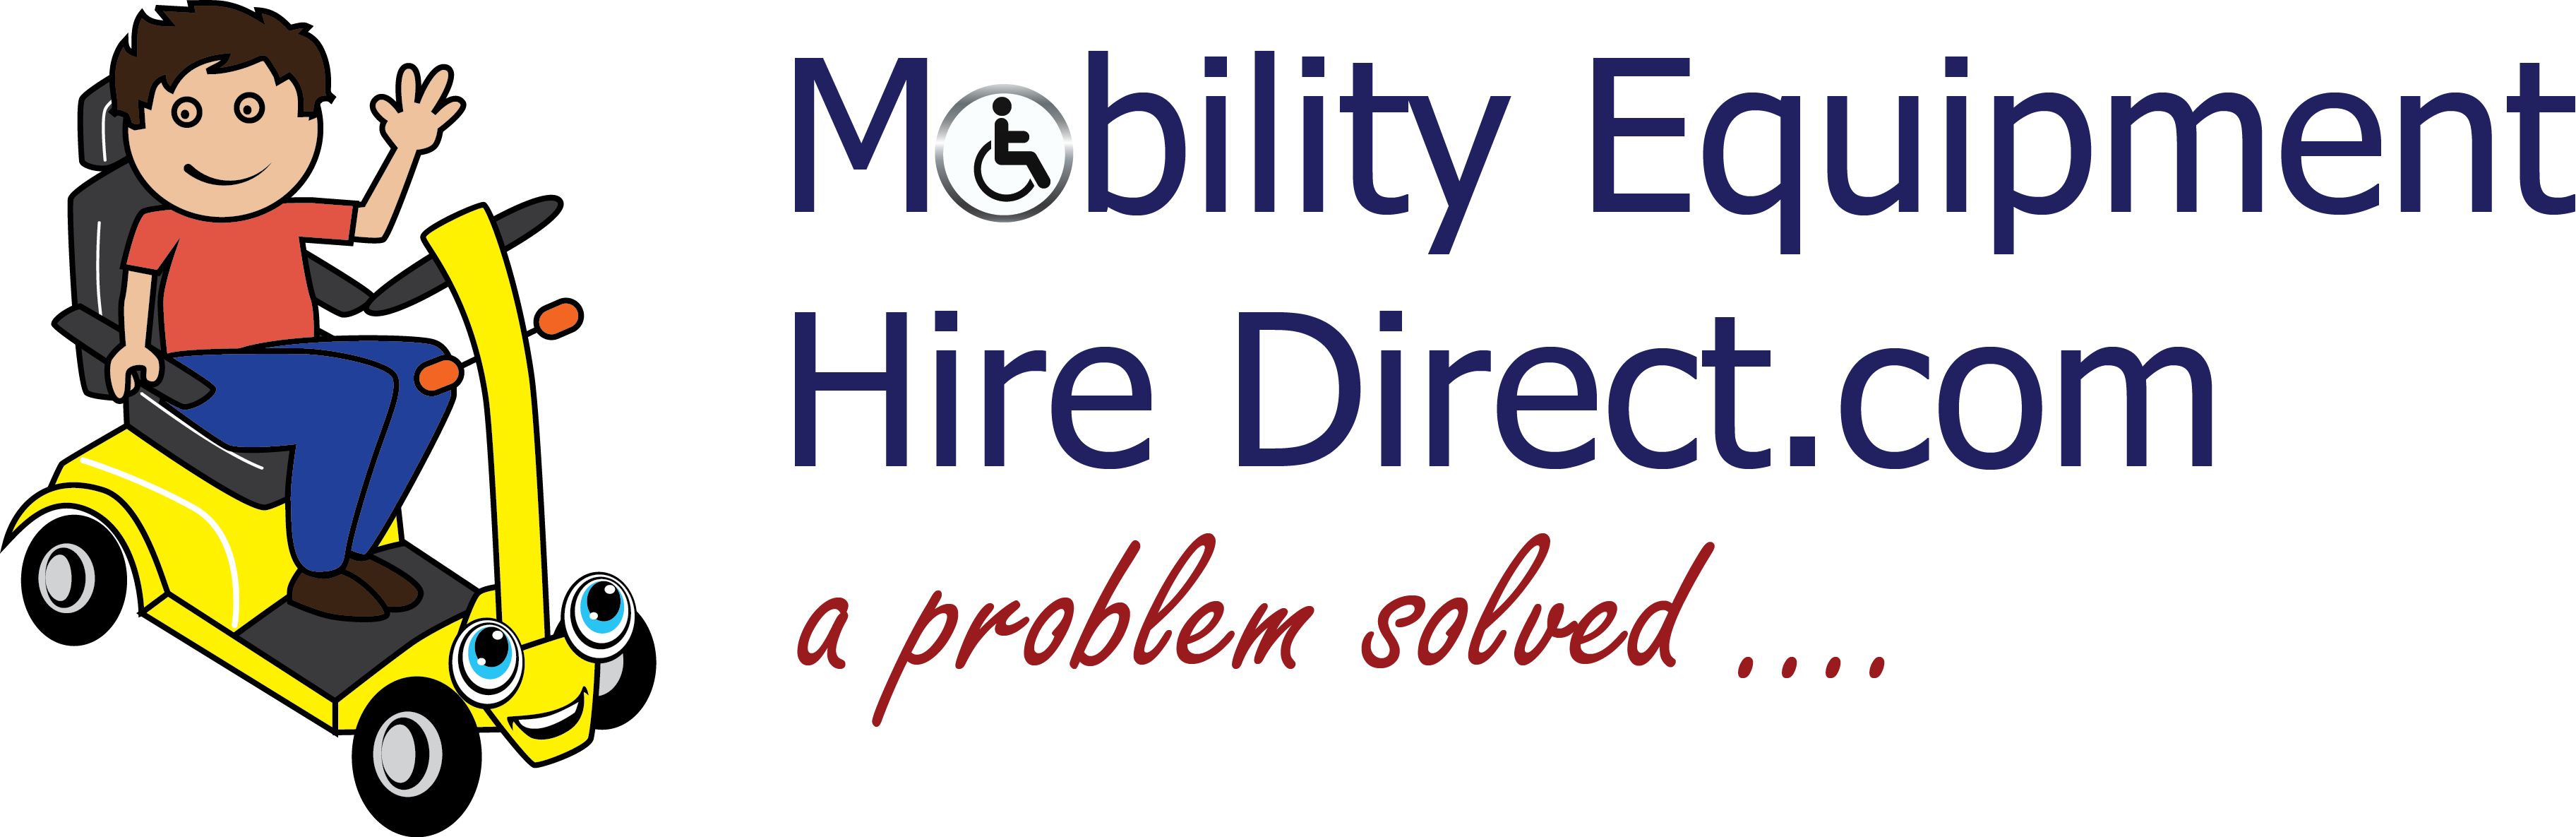 Mobility Equipment Hire Direct